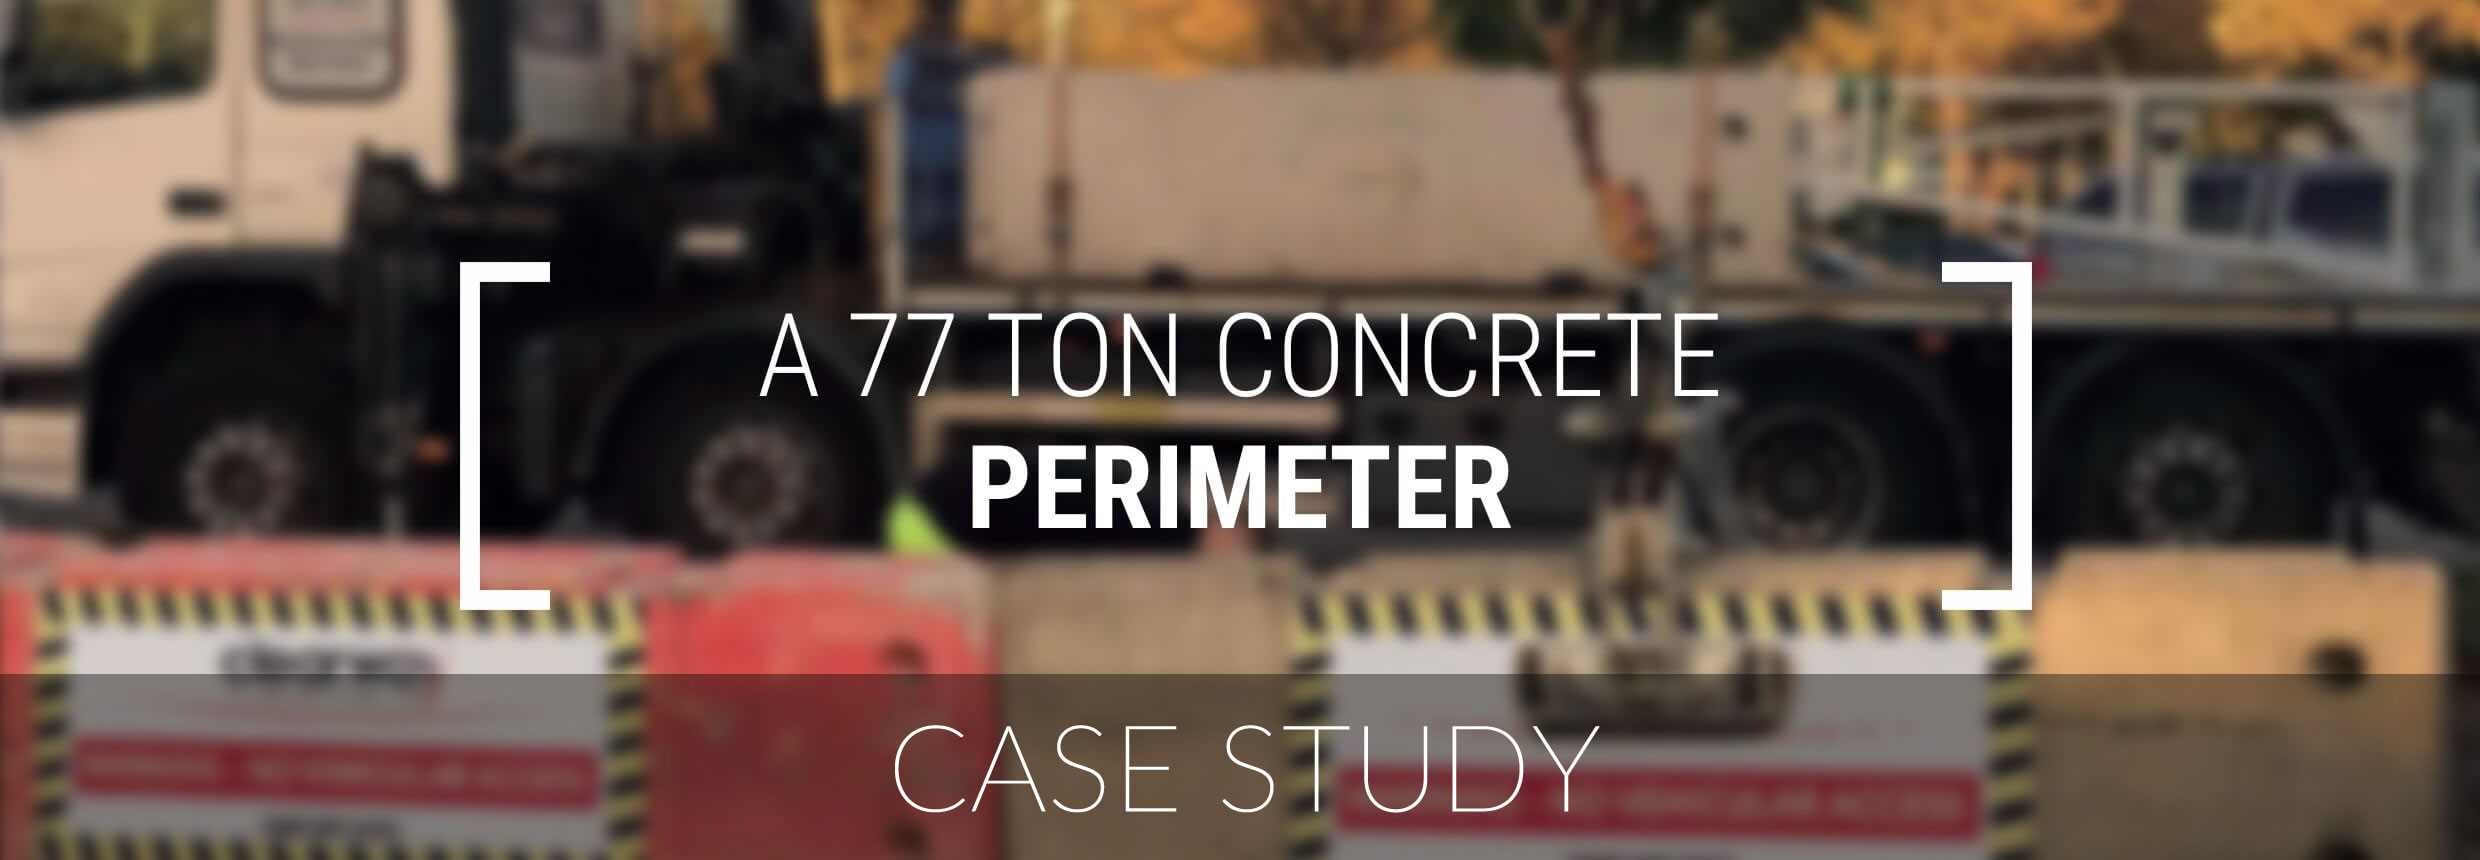 Clearway Case Study - Concrete Barrier Perimeter